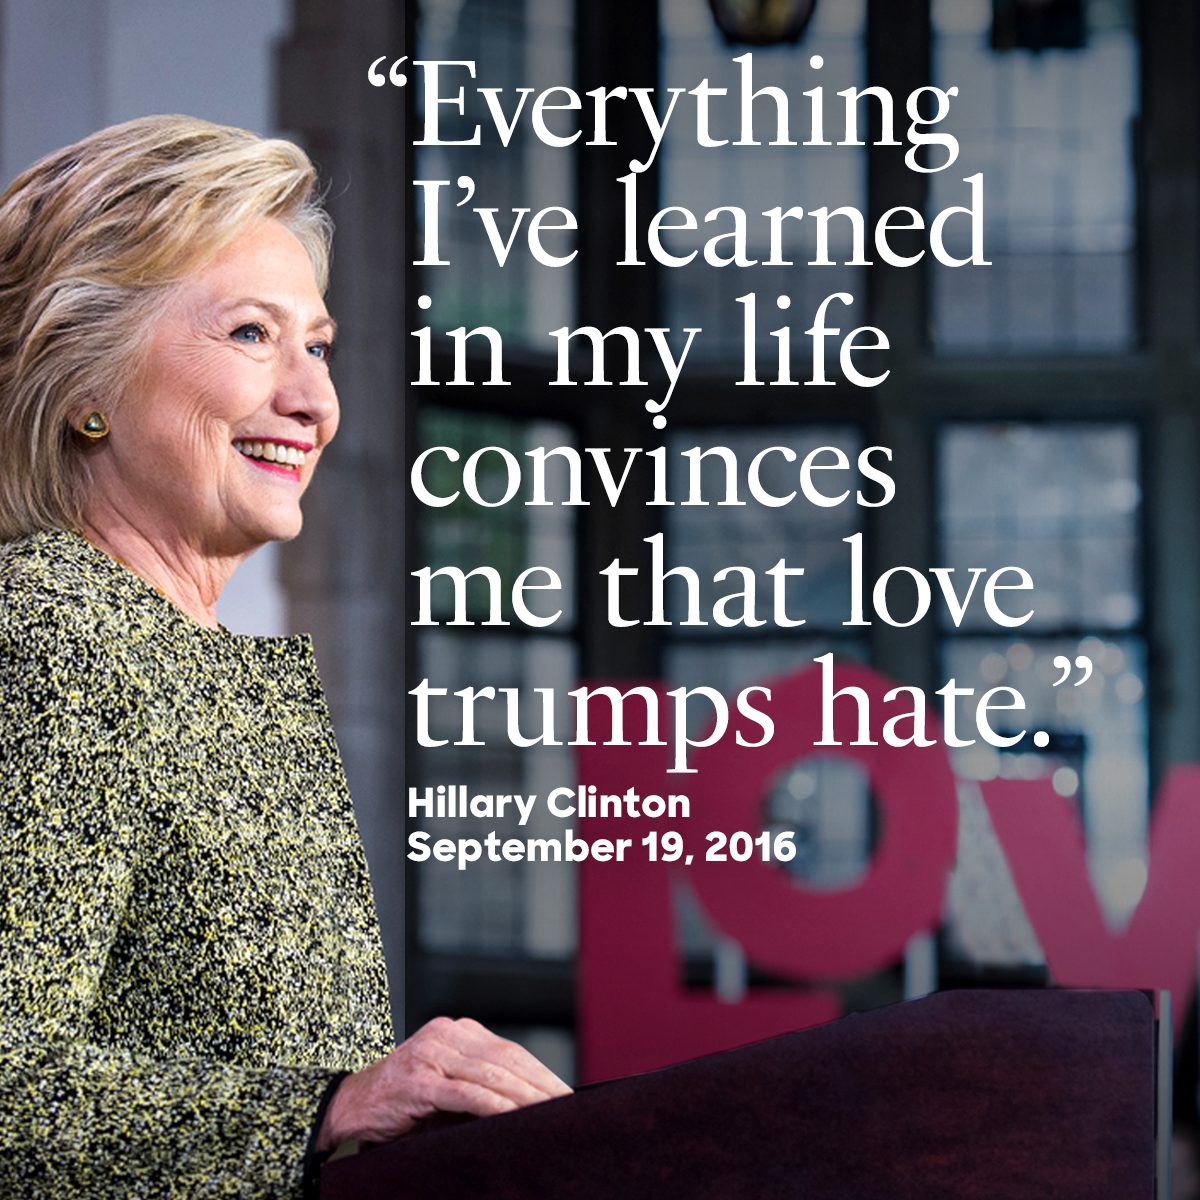 LTH-hrc-quote-fb-092016.png